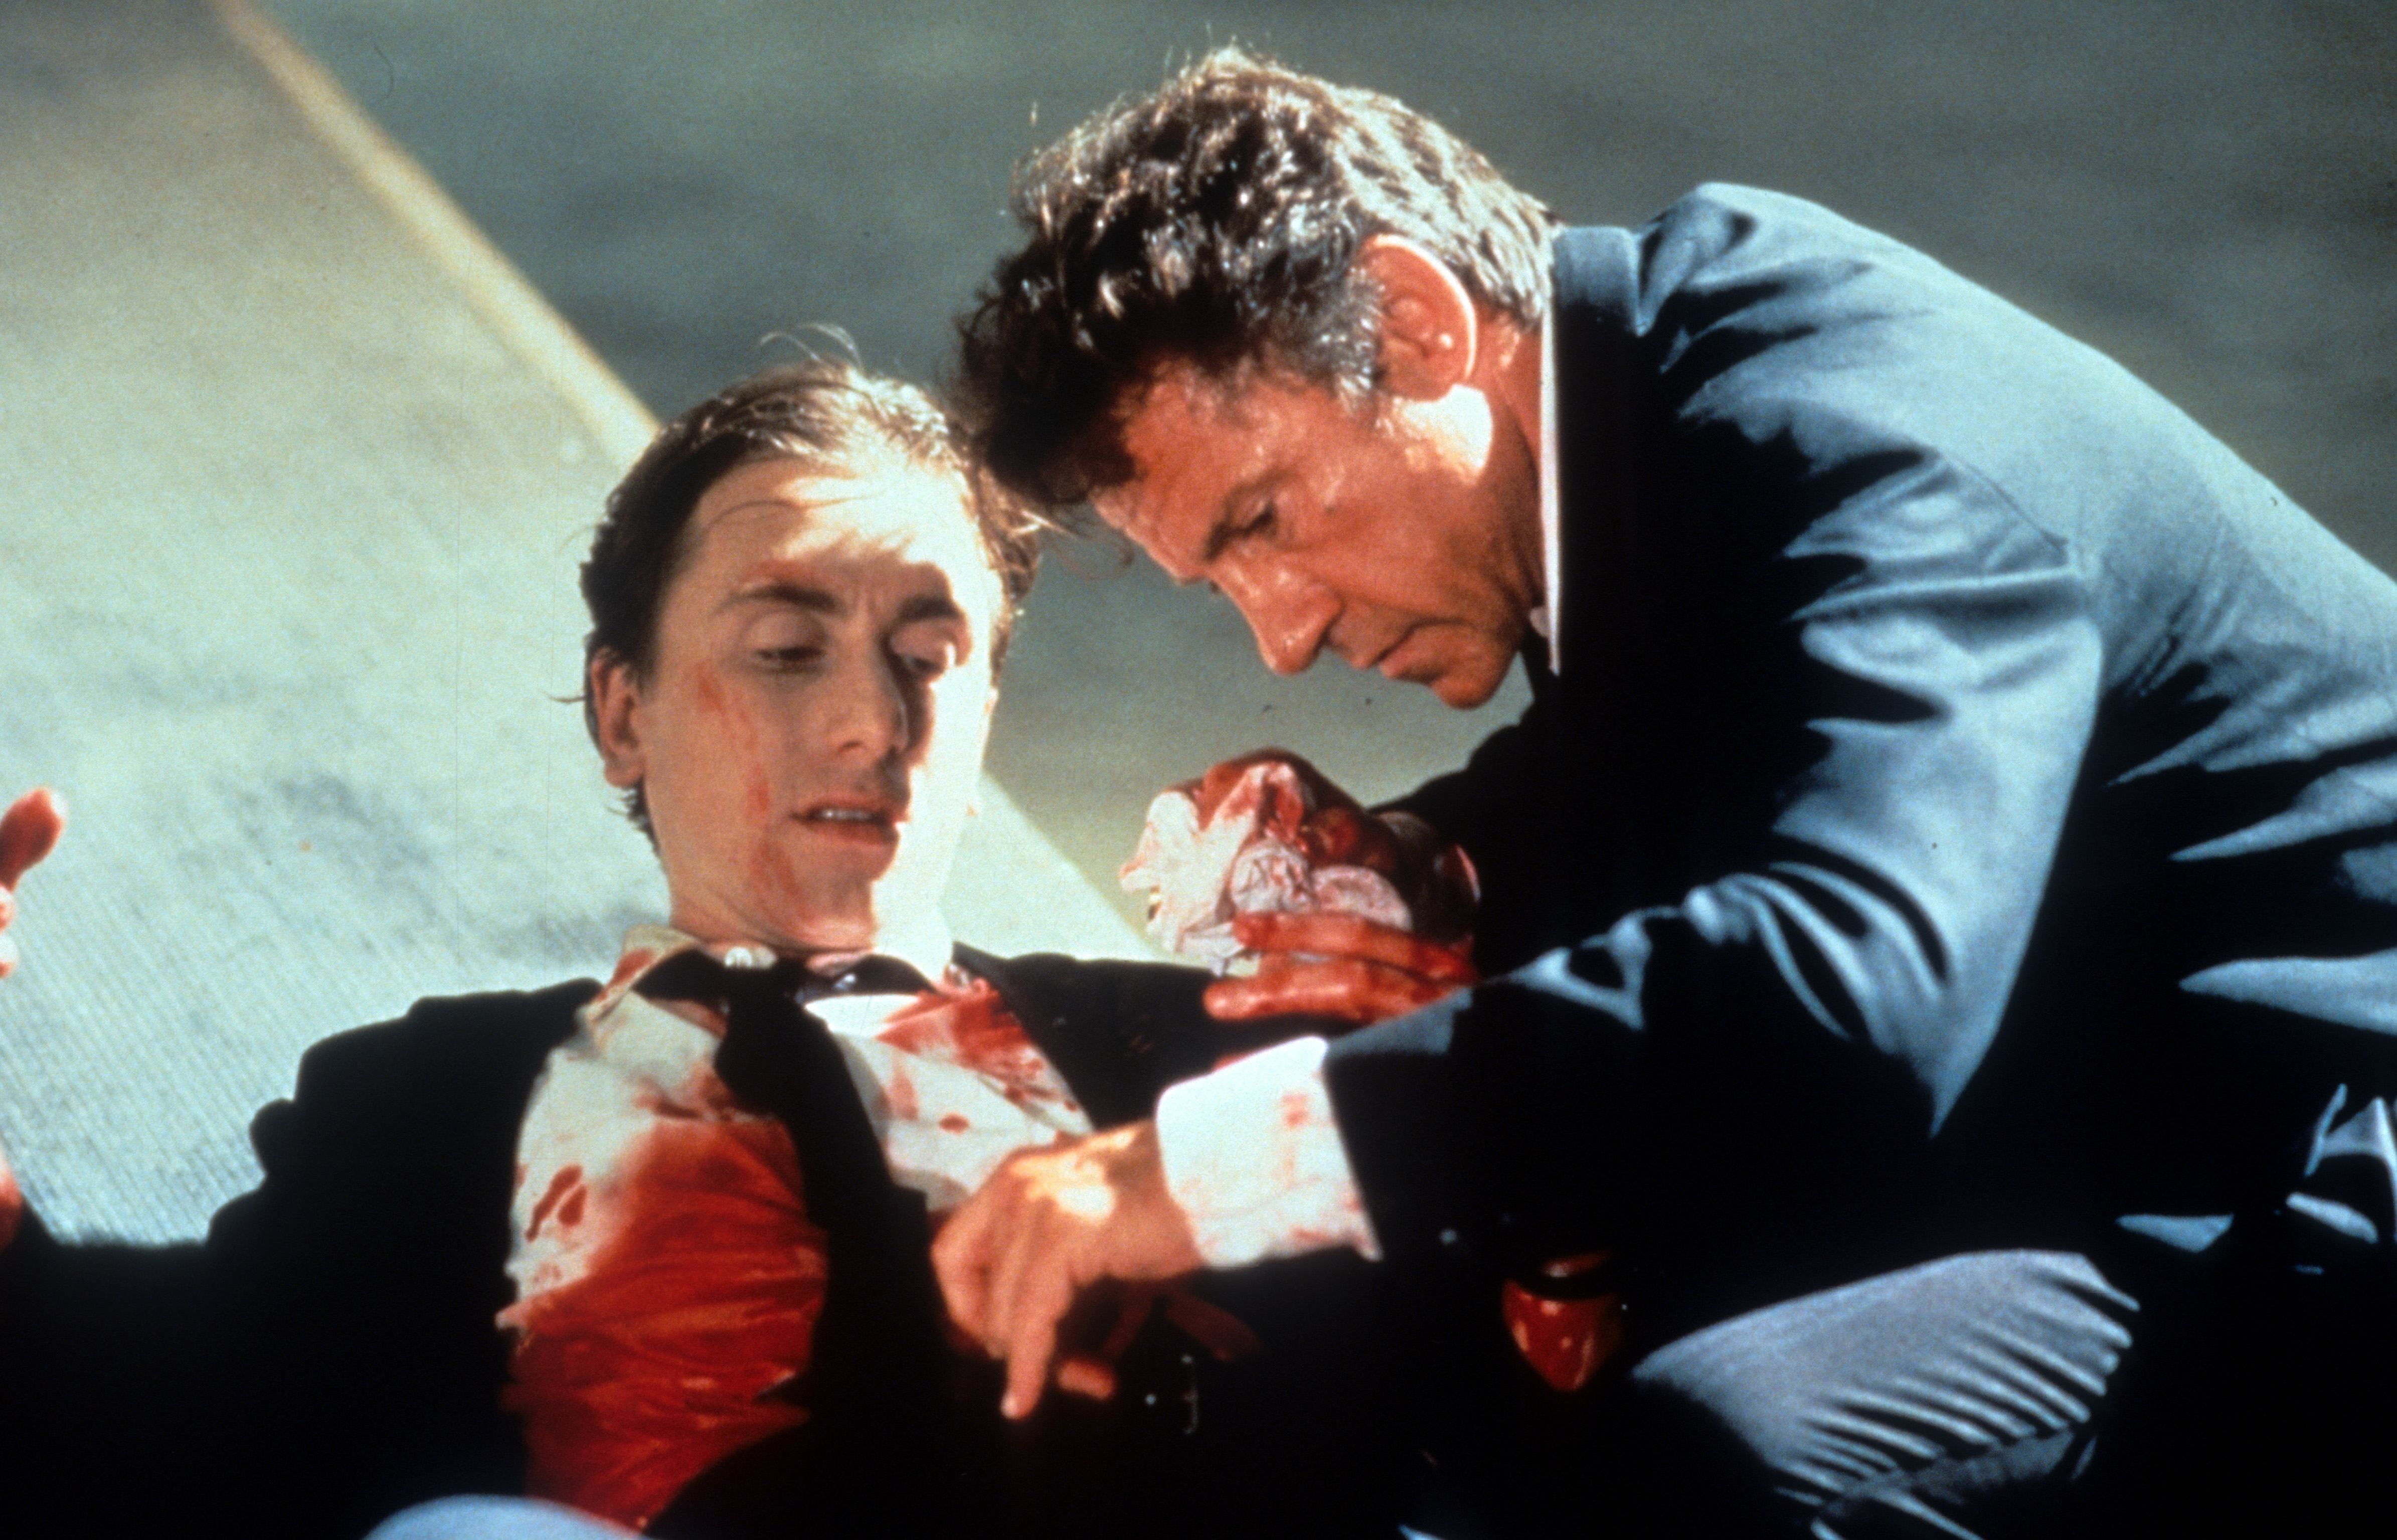 Harvey Keitel and Tim Roth in Reservoir Dogs (1992)